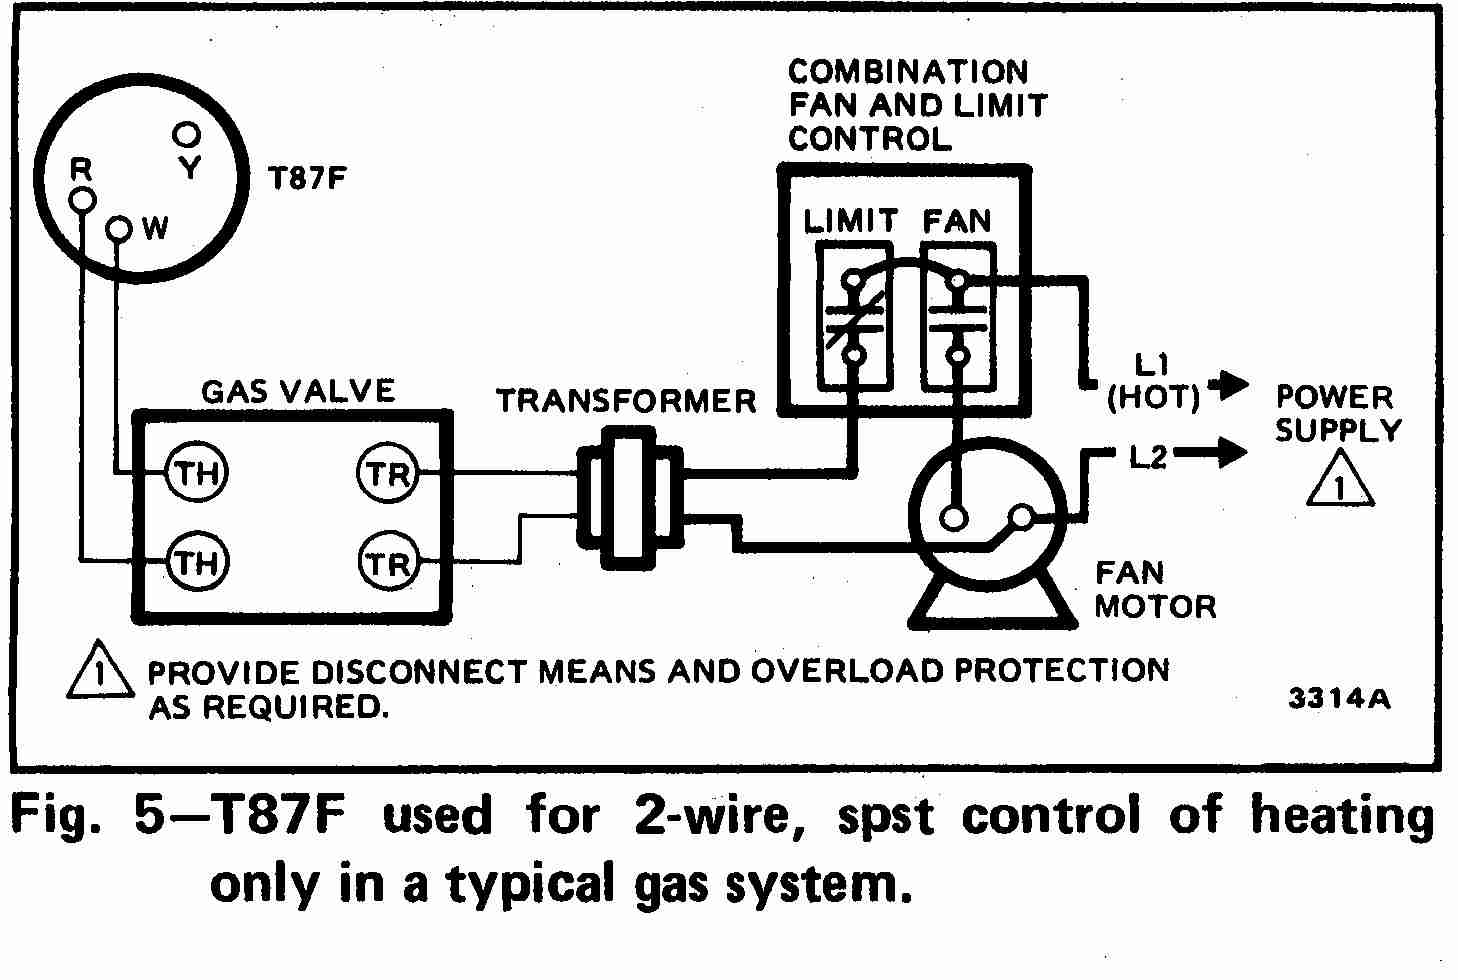 TT_T87F_0002_2Wg_DJF space heater wiring diagram s700 electric heater wire diagram Basic Outlet Wiring Diagrams at creativeand.co